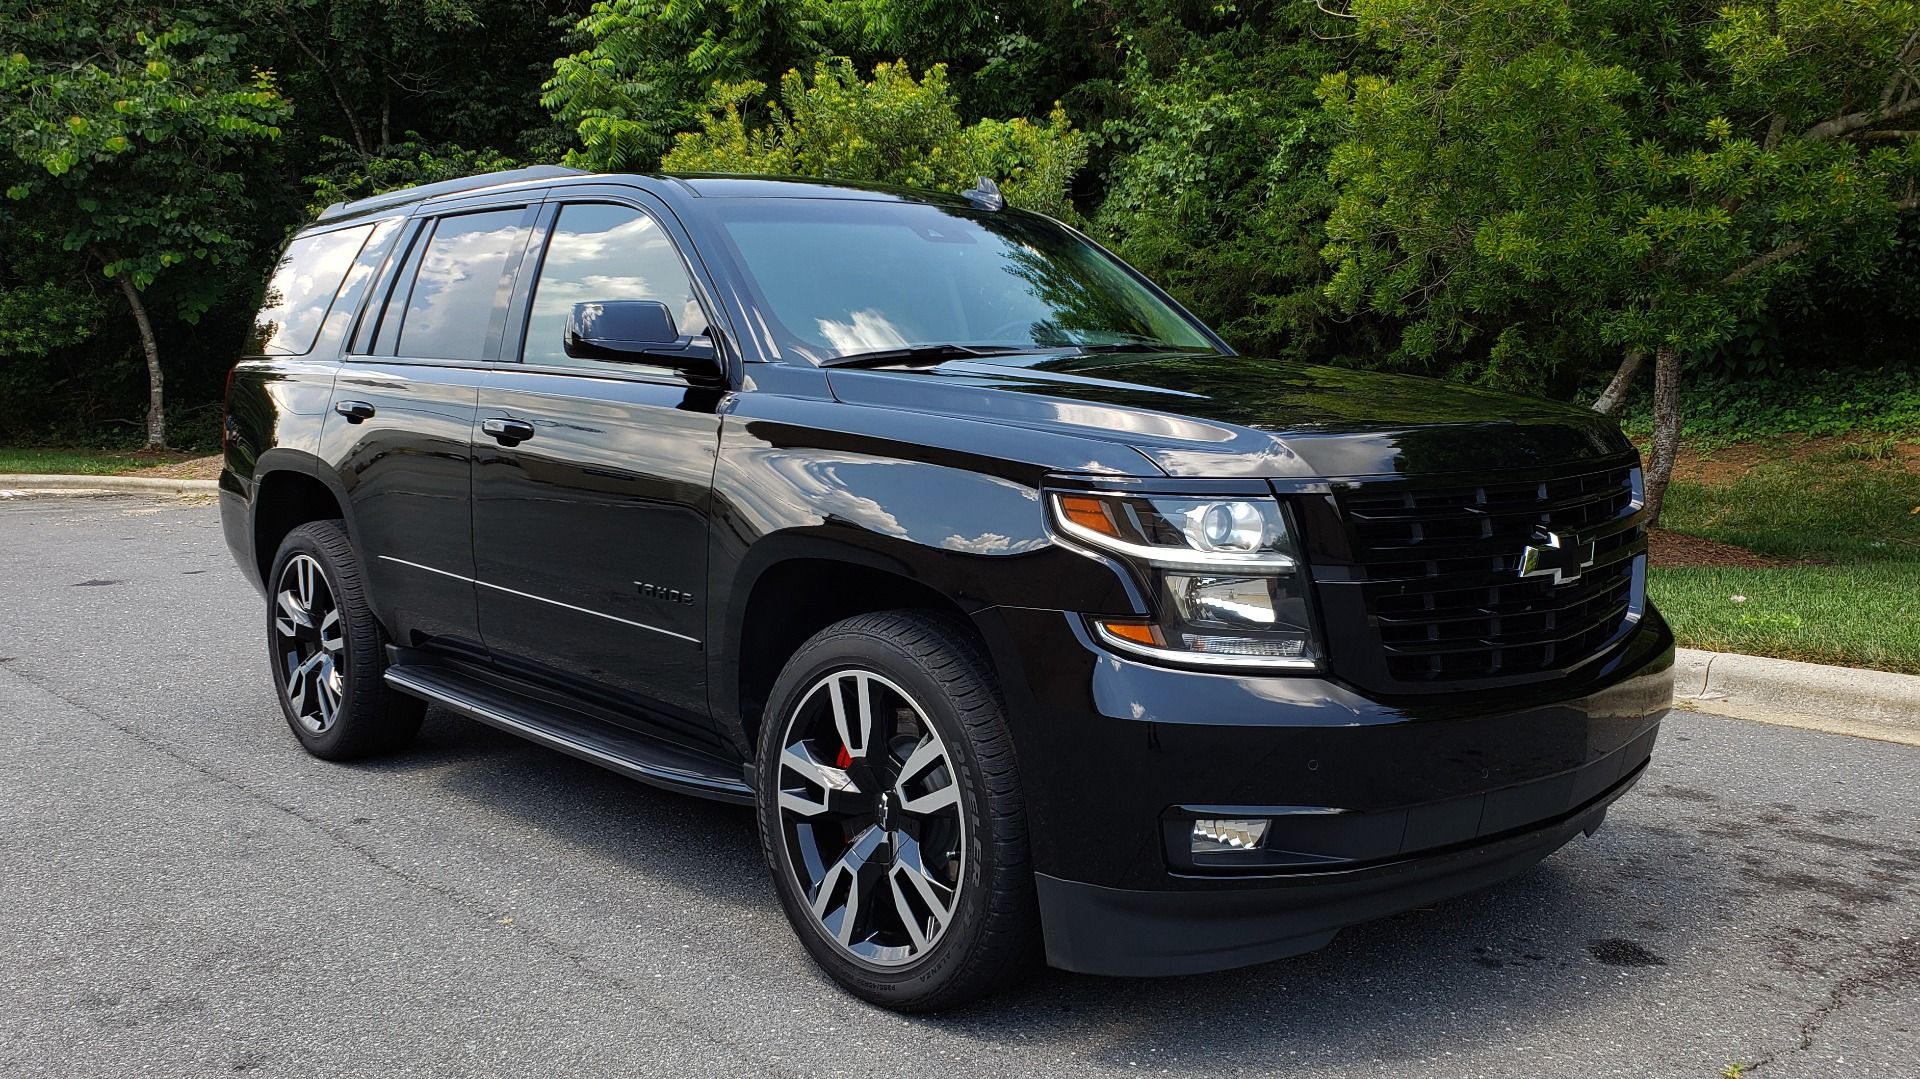 Used 2018 Chevrolet TAHOE PREMIER 4WD / RST EDIT / NAV / SUNROOF / CAMERA / 3-ROW for sale Sold at Formula Imports in Charlotte NC 28227 4